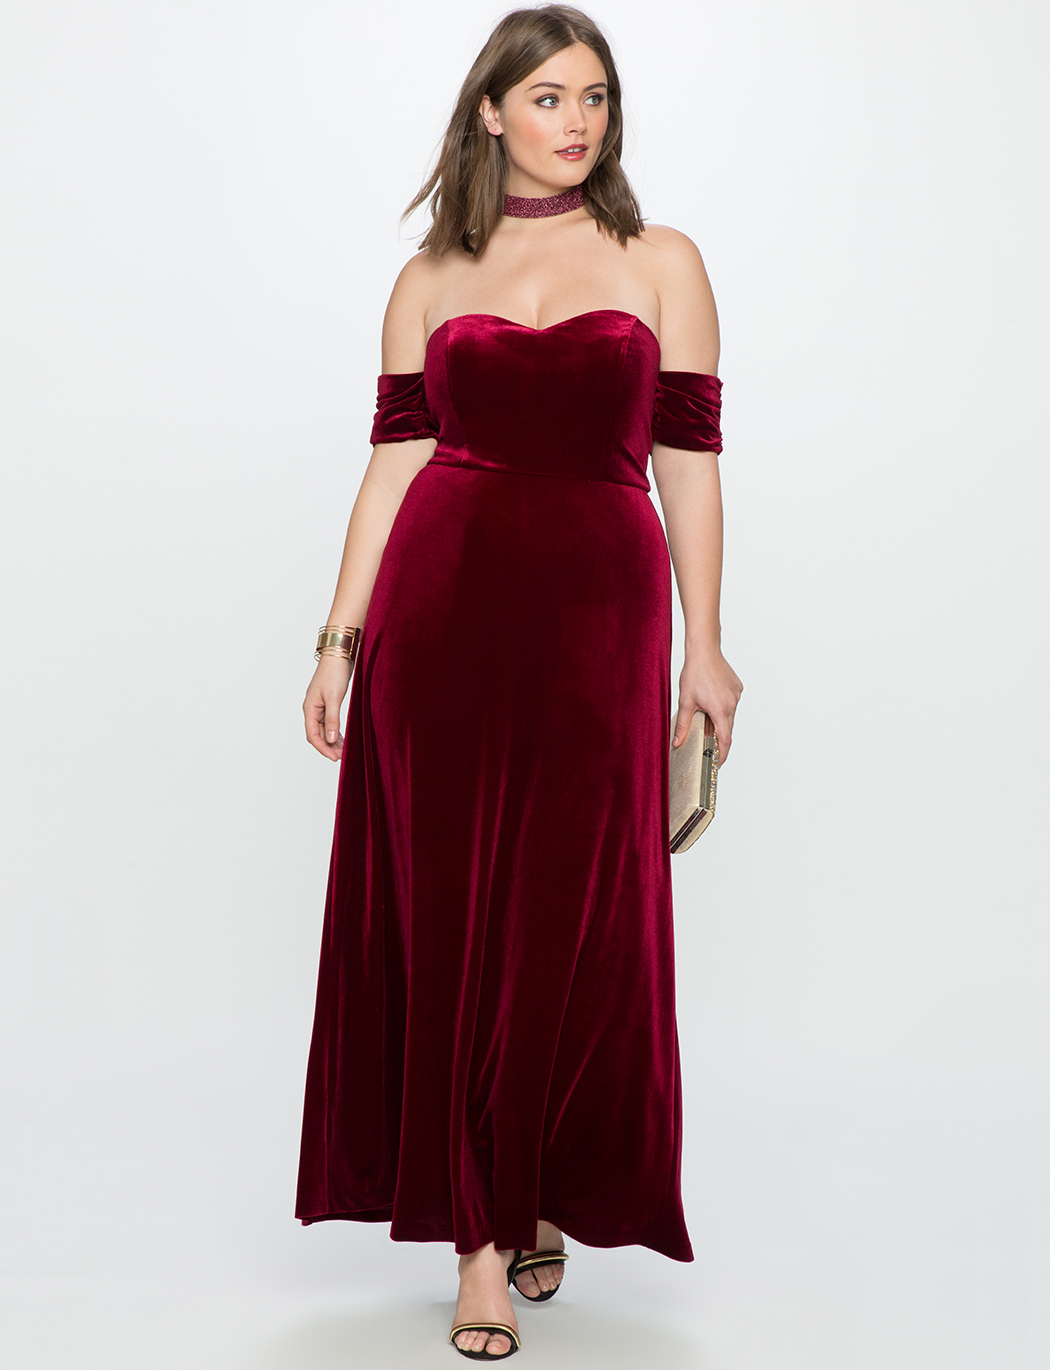 How To Wear The Velvet Trend In Plus Size | Stylish Curves